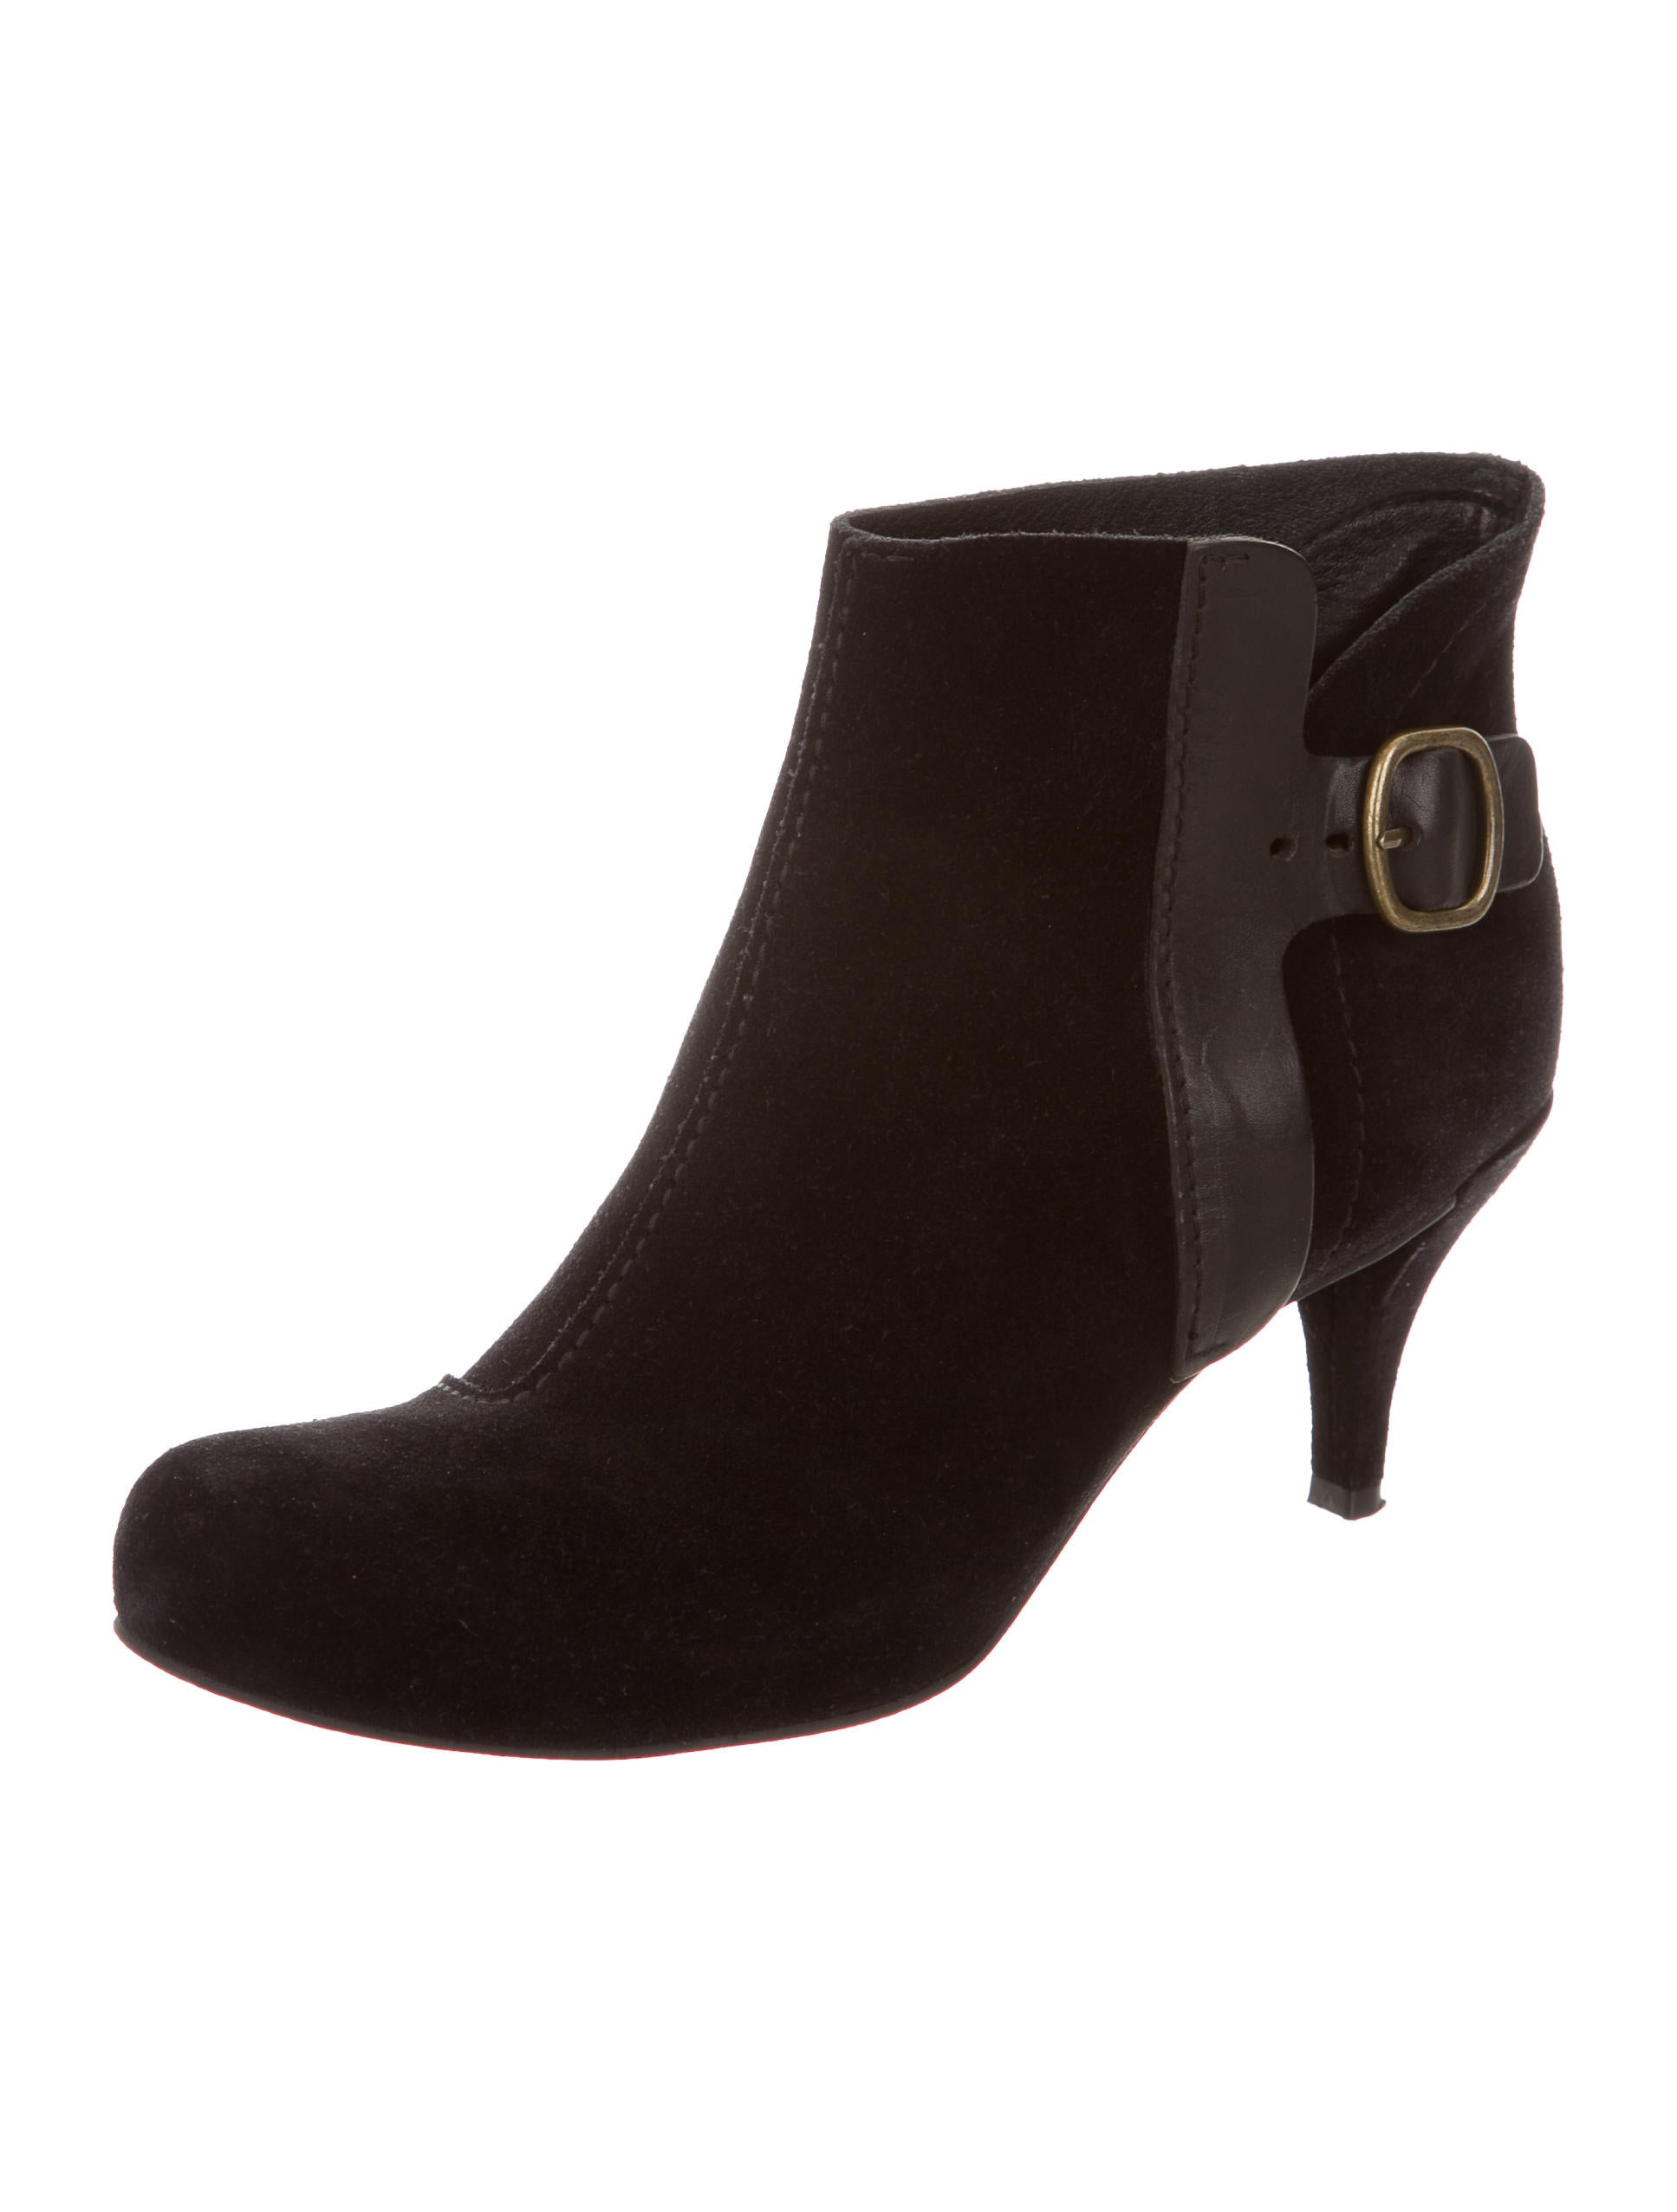 pedro garcia buckle accented ankle boots shoes